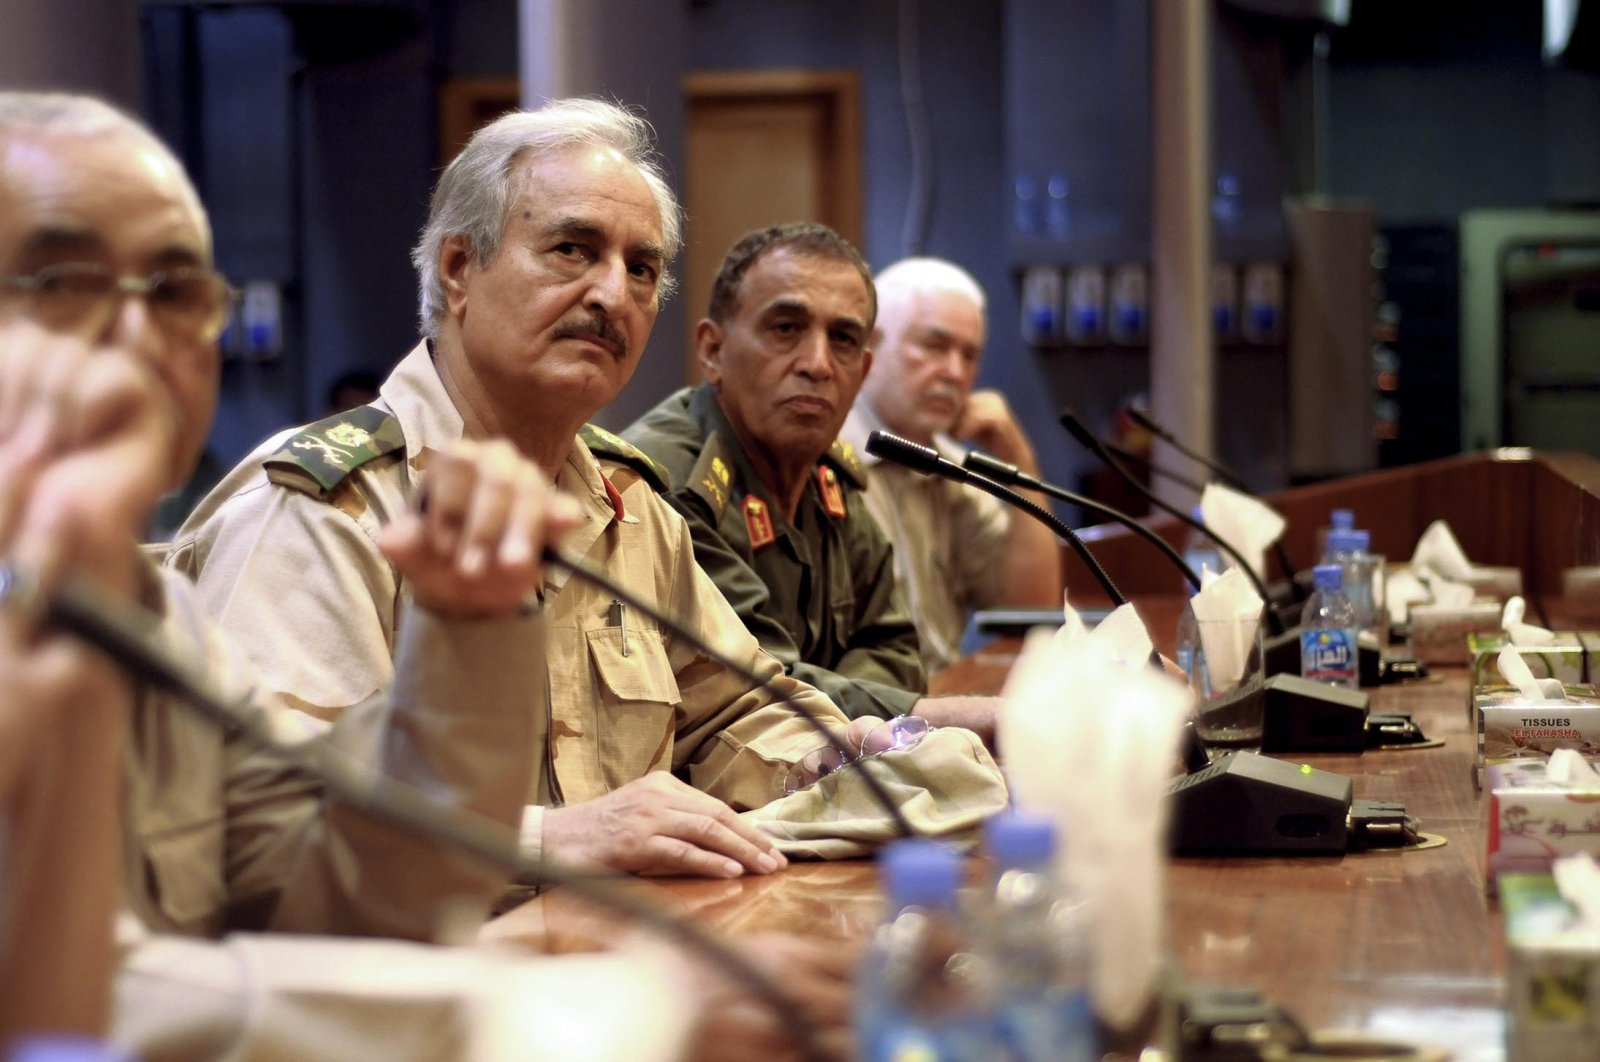 Putschist Gen. Khalifa Haftar meets with former army officers in Zawiyah, east of Tripoli, Libya, Sept. 14, 2011. (Getty Images)